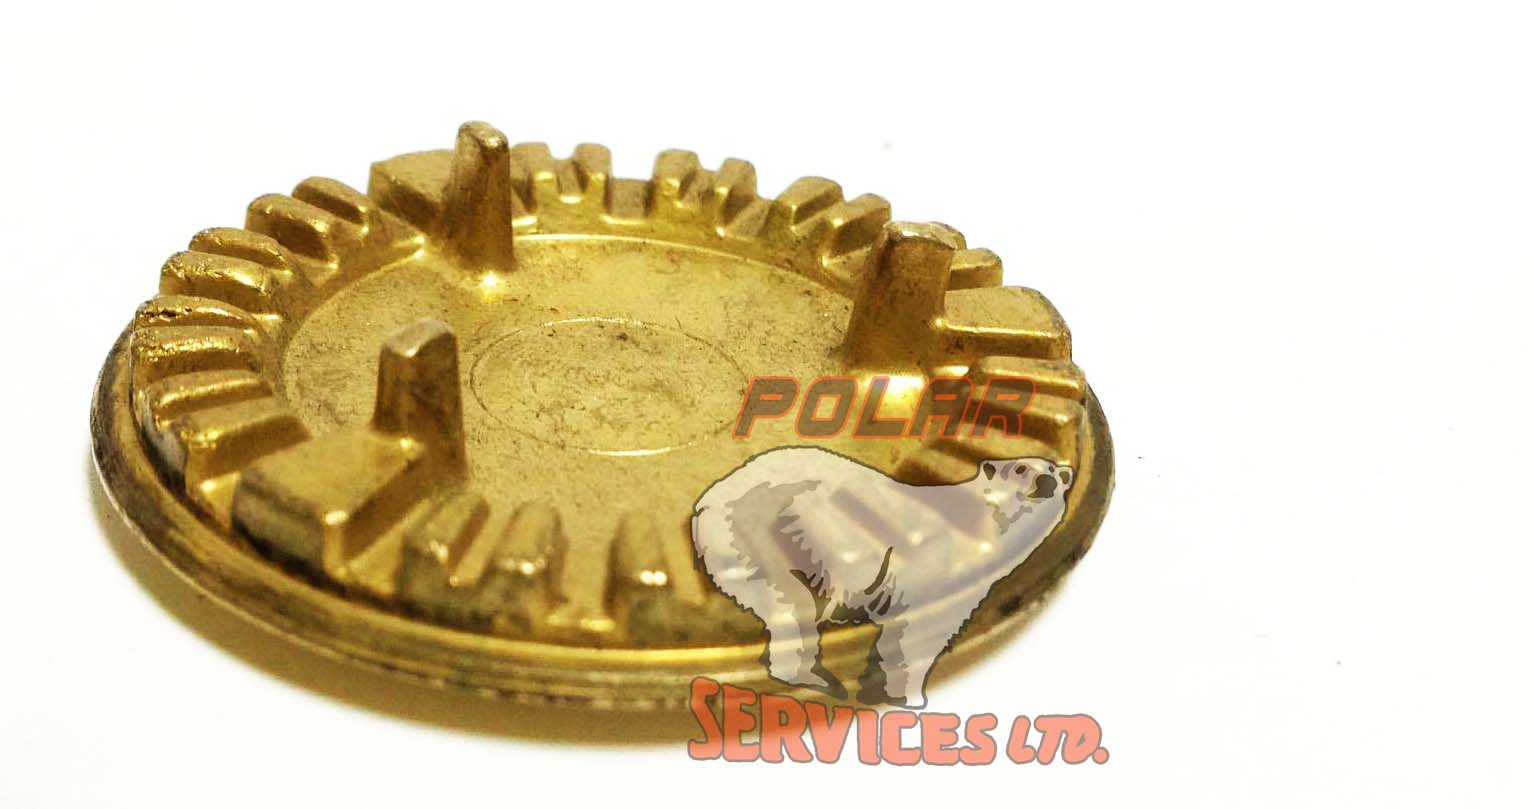 COOKER BRASS BURNER, EXTRA SMALL. (FAMILY CODES- L6711, L6712, L6713, L6714). ZOPPAS. Malta, 								Cooker Malta, Polar Services LTD Malta Malta